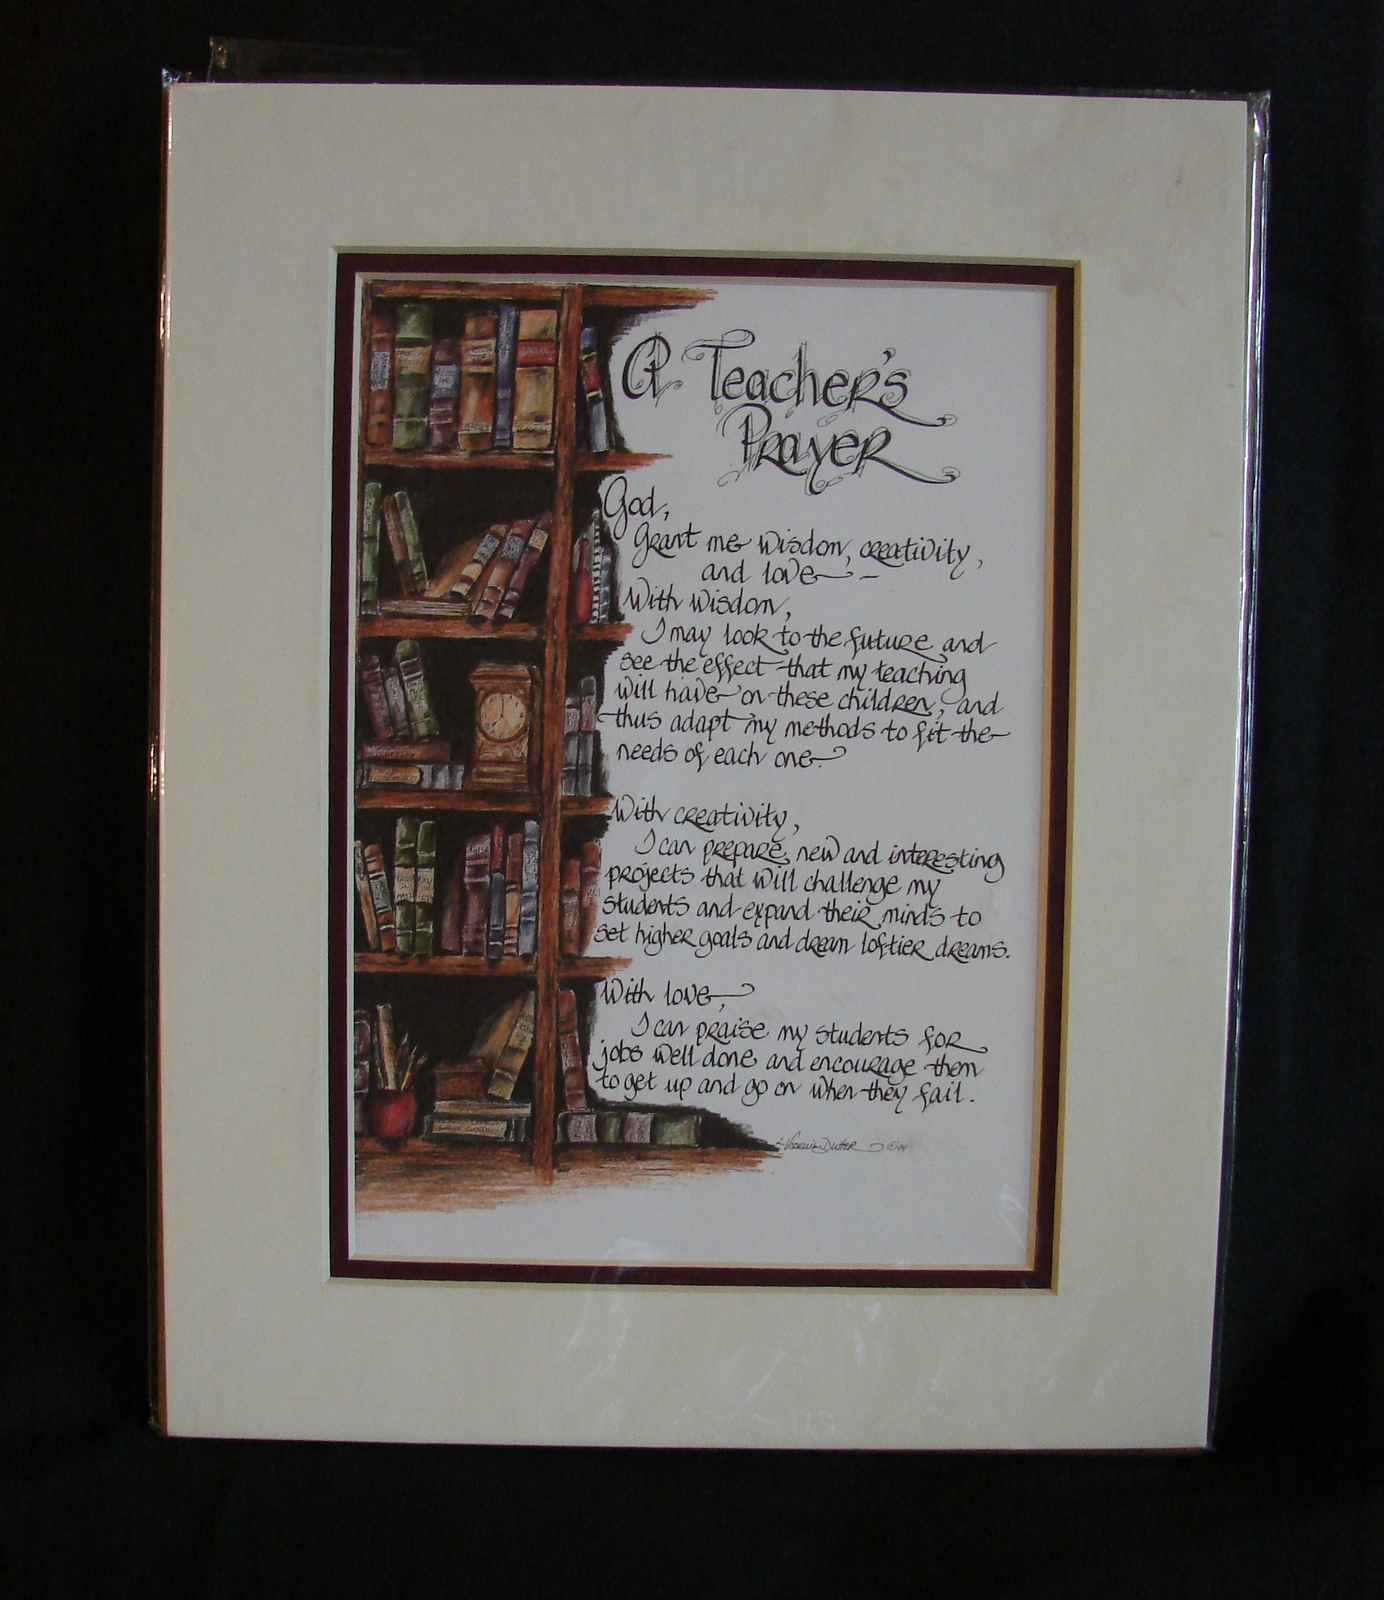 Primary image for Lori Voskuil-Dutter Matted Calligraphy A Teacher's Prayer Matted